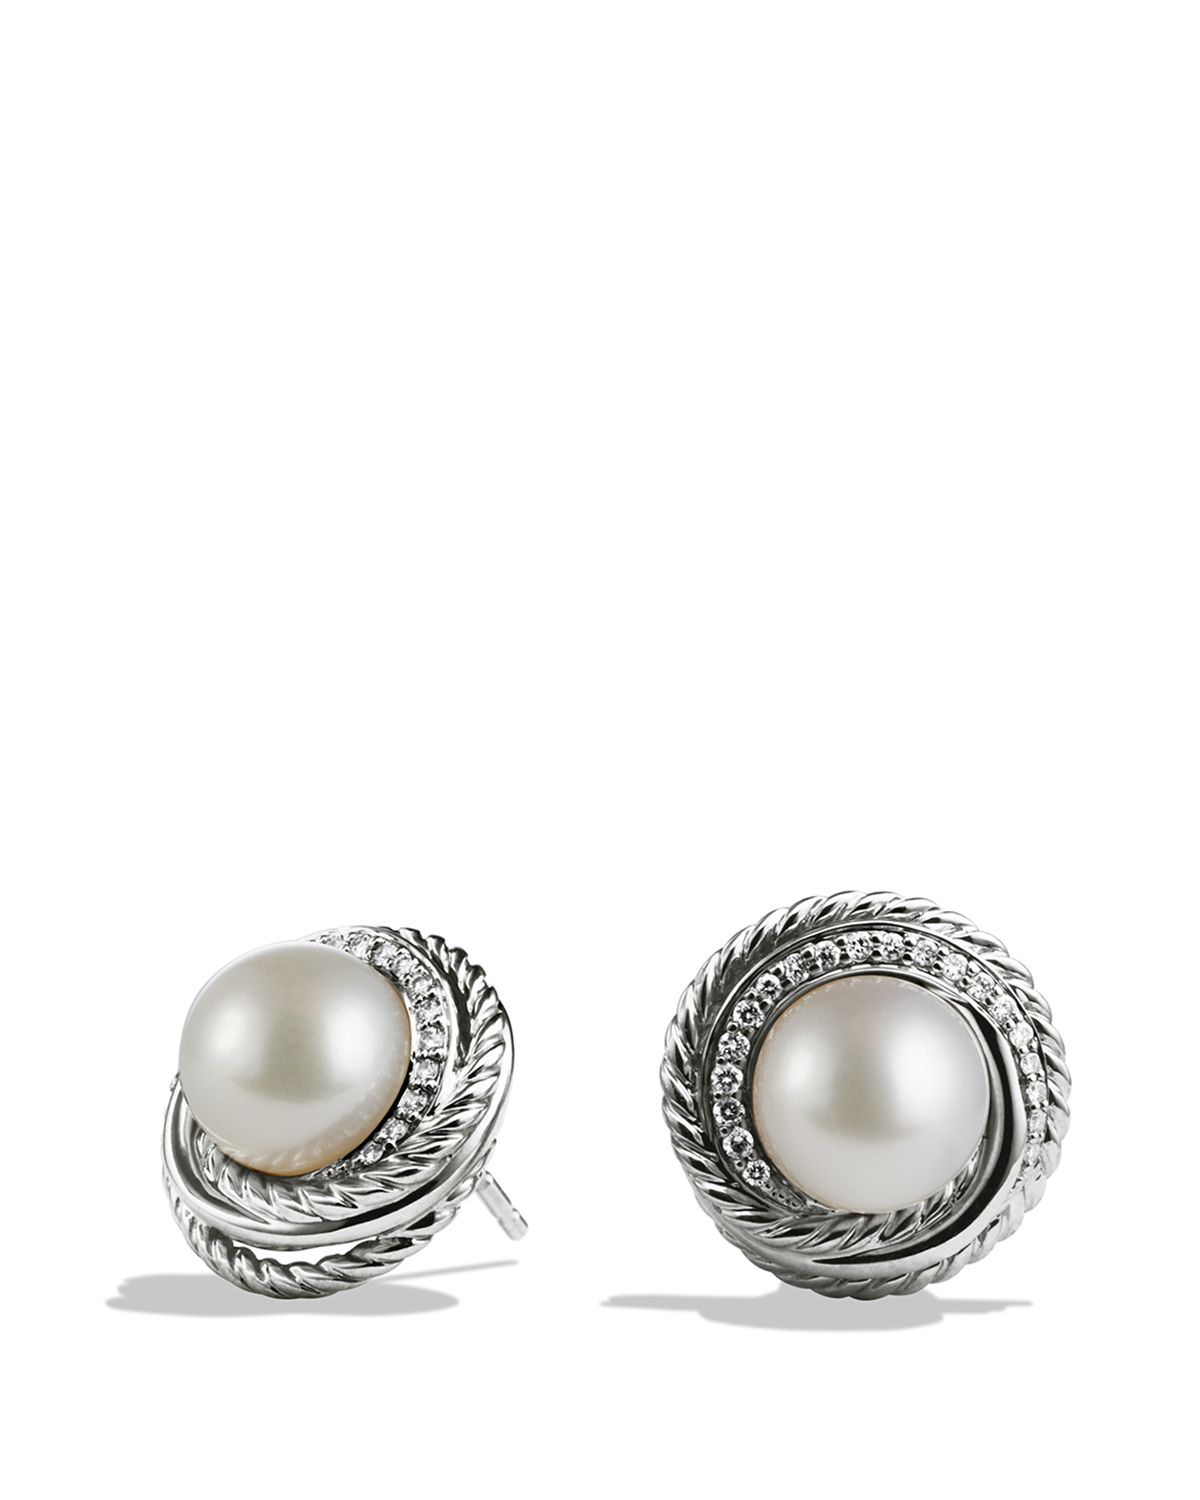 Pearl Rings By David Yurman